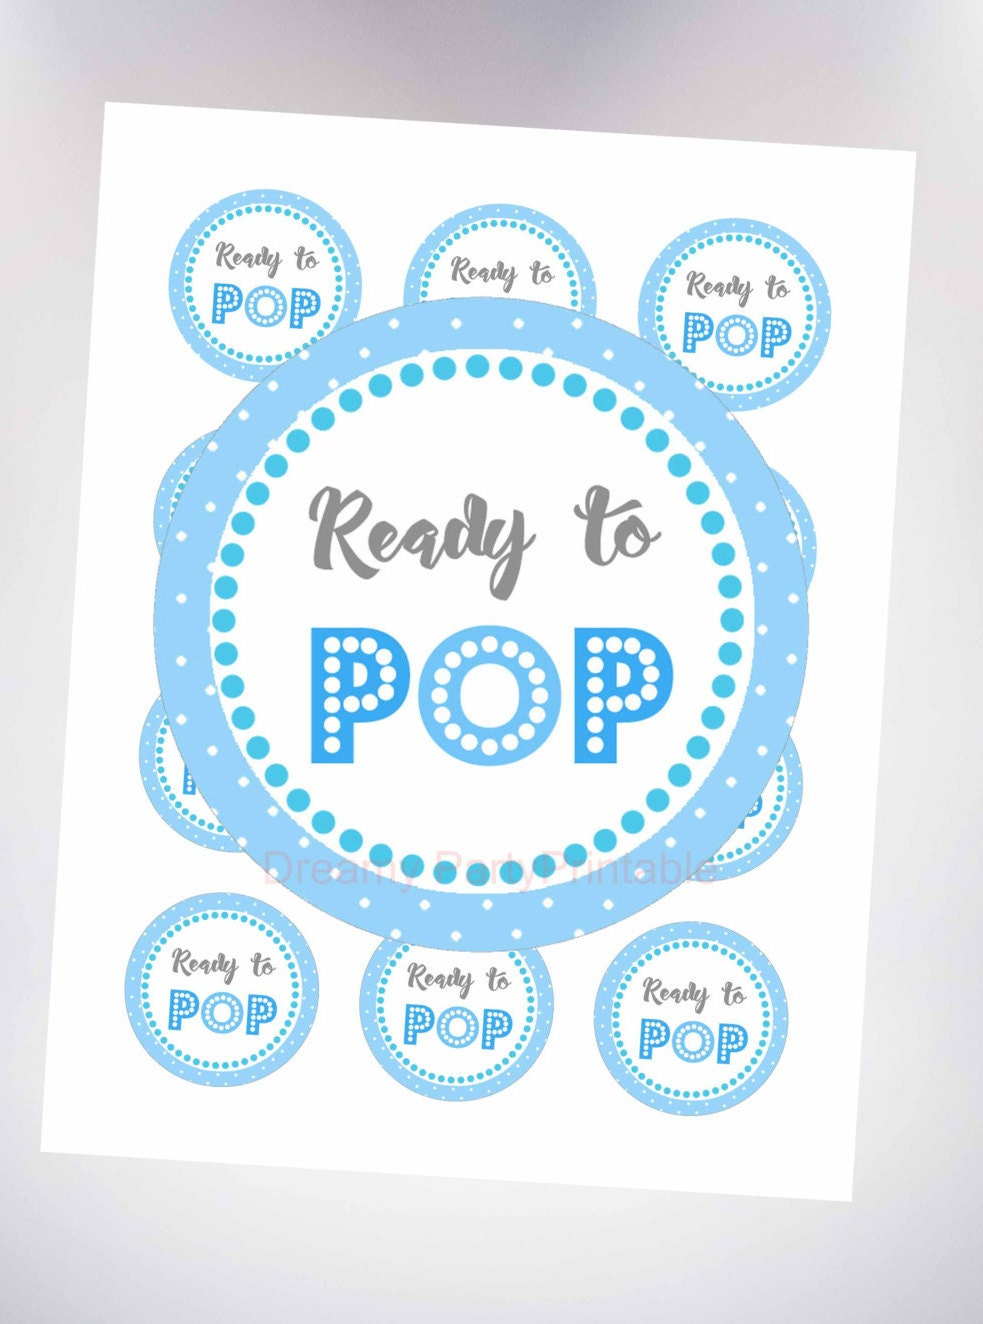 ready to pop stickers template ready to pop sticker blue 2 ready to pop circles baby